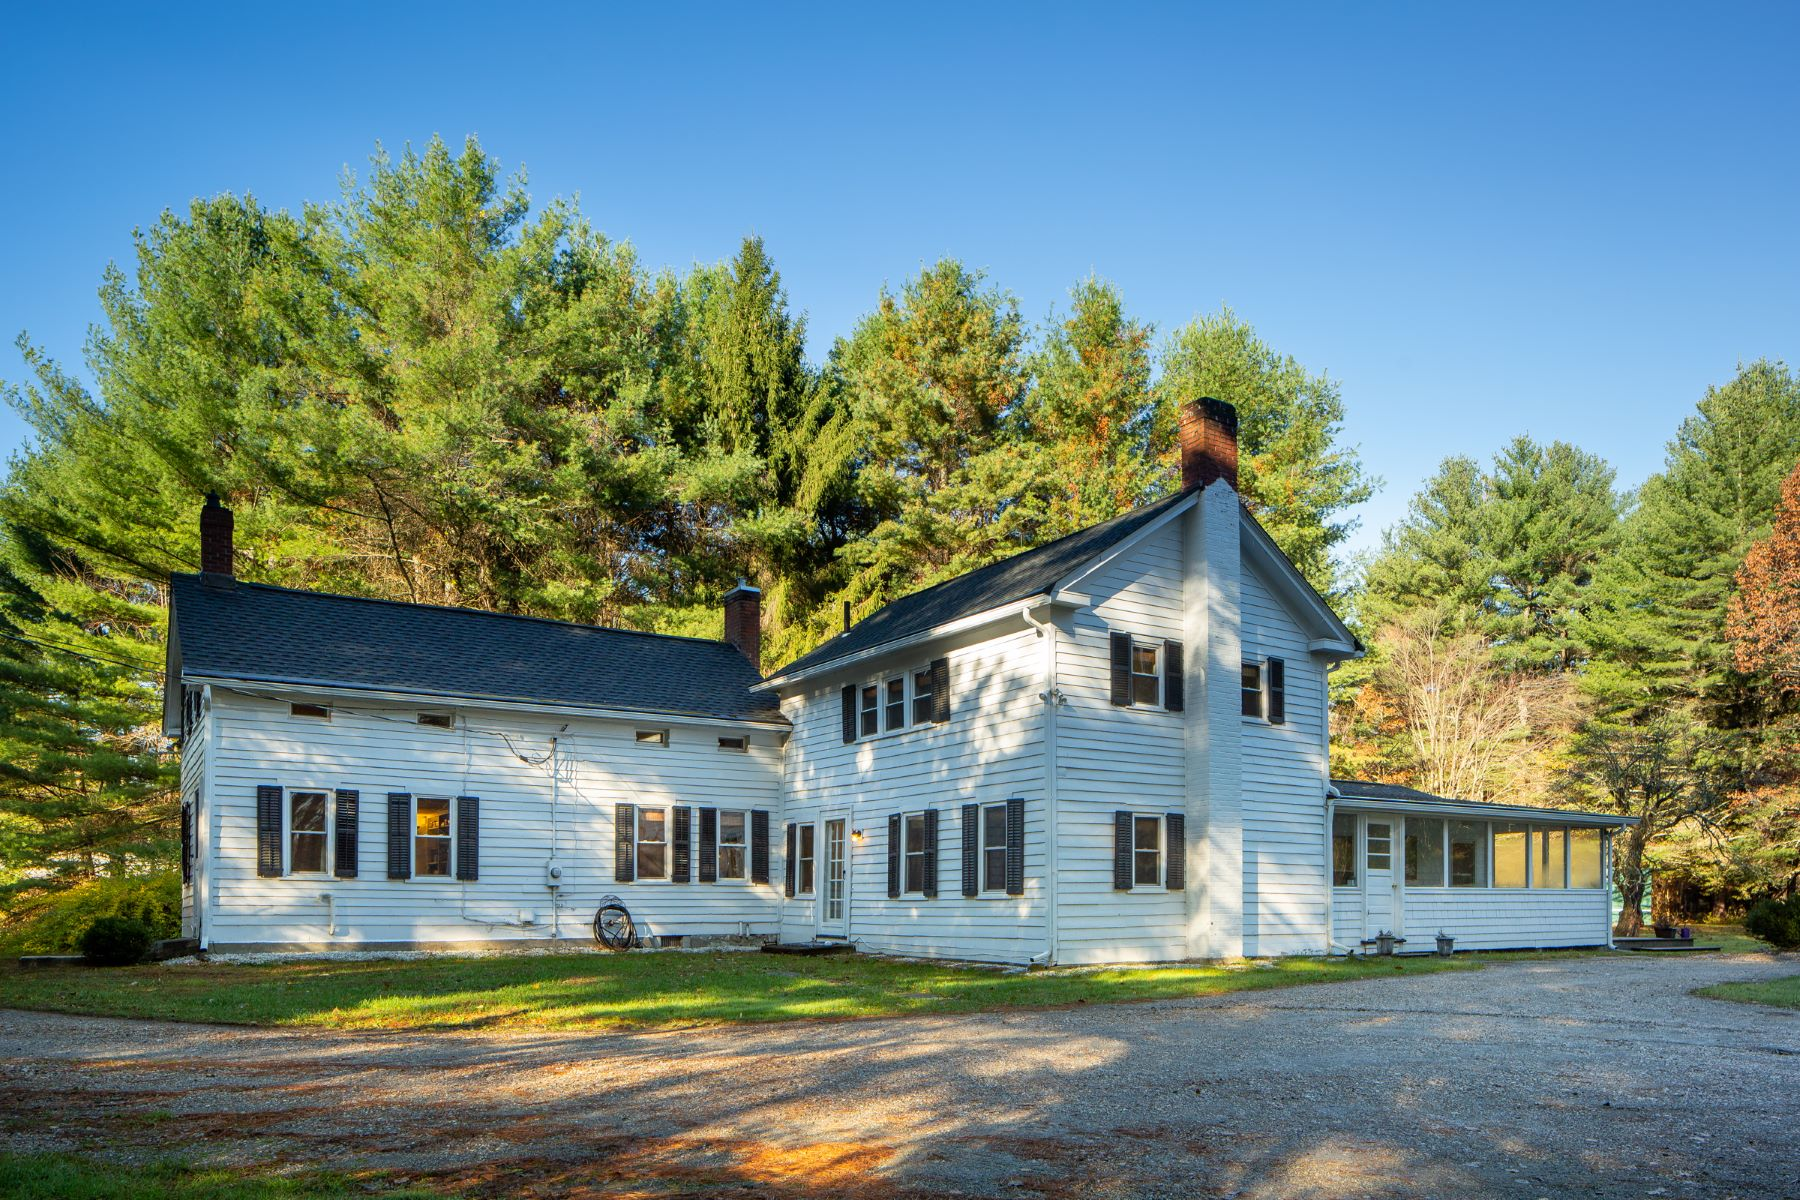 Single Family Home for Active at Beautifully Renovated Historic Home 670 South Egremont Rd Great Barrington, Massachusetts 01230 United States